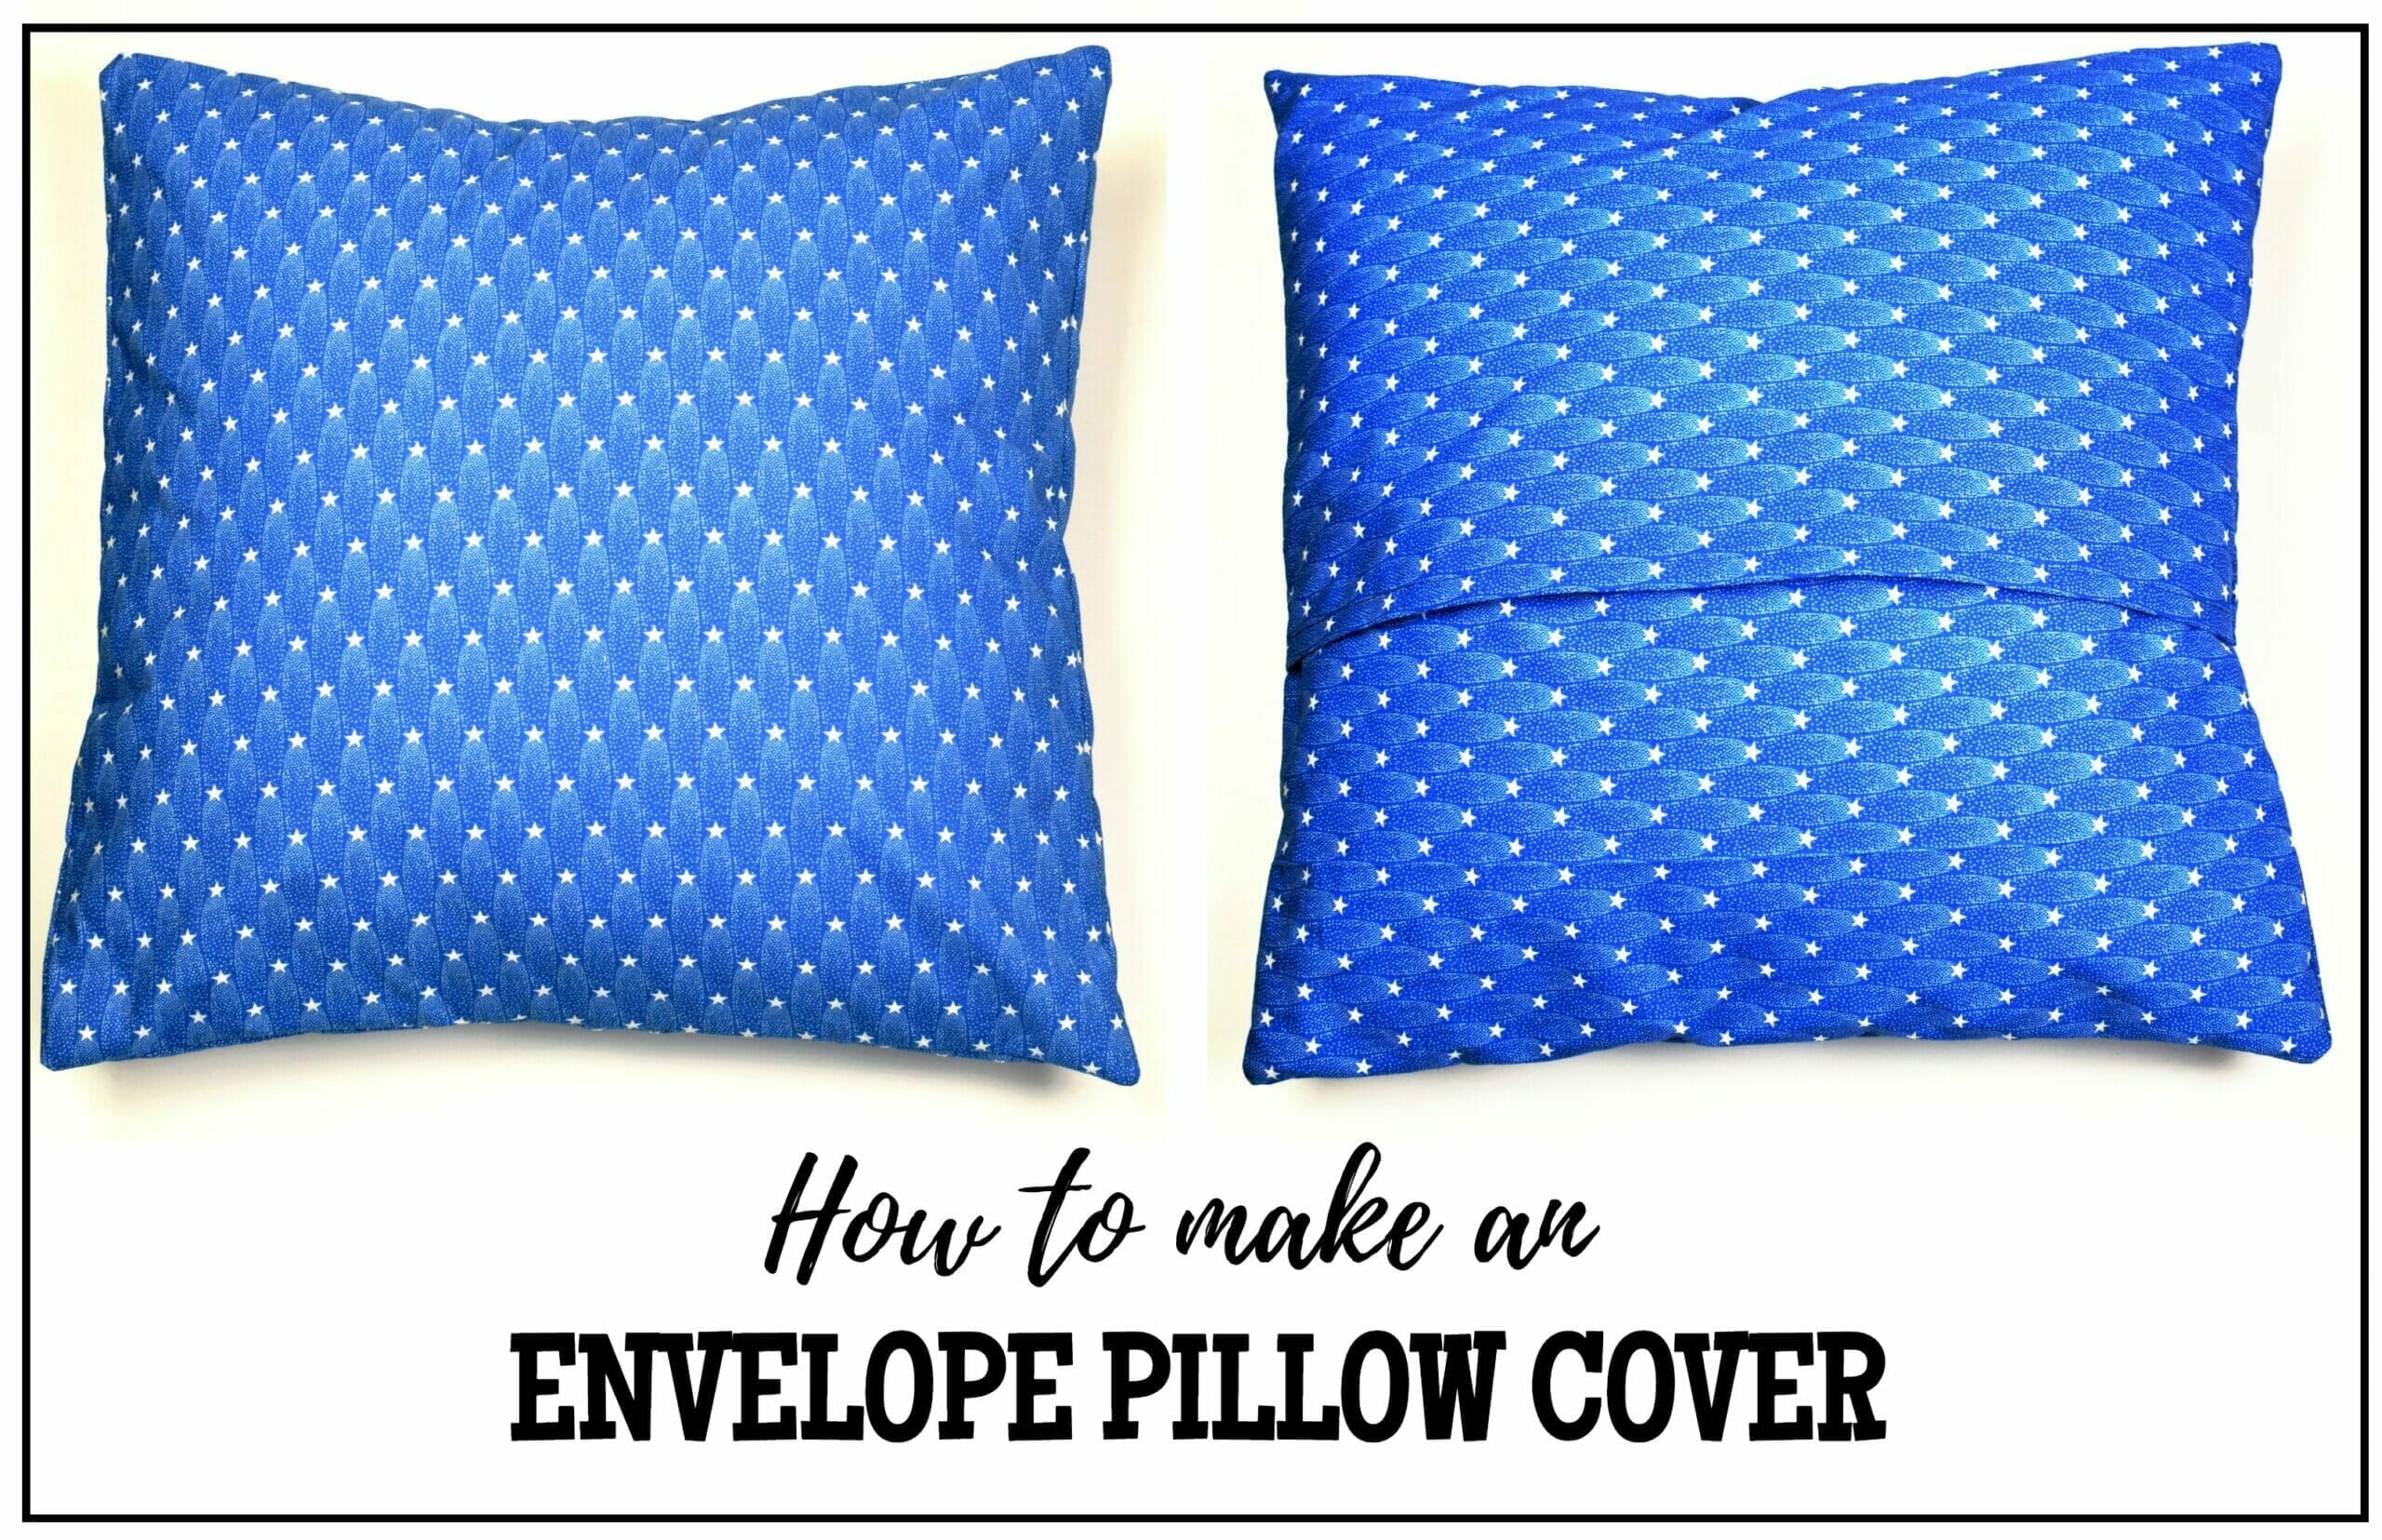 How to make an envelope pillow cover tutorial I Can Sew This